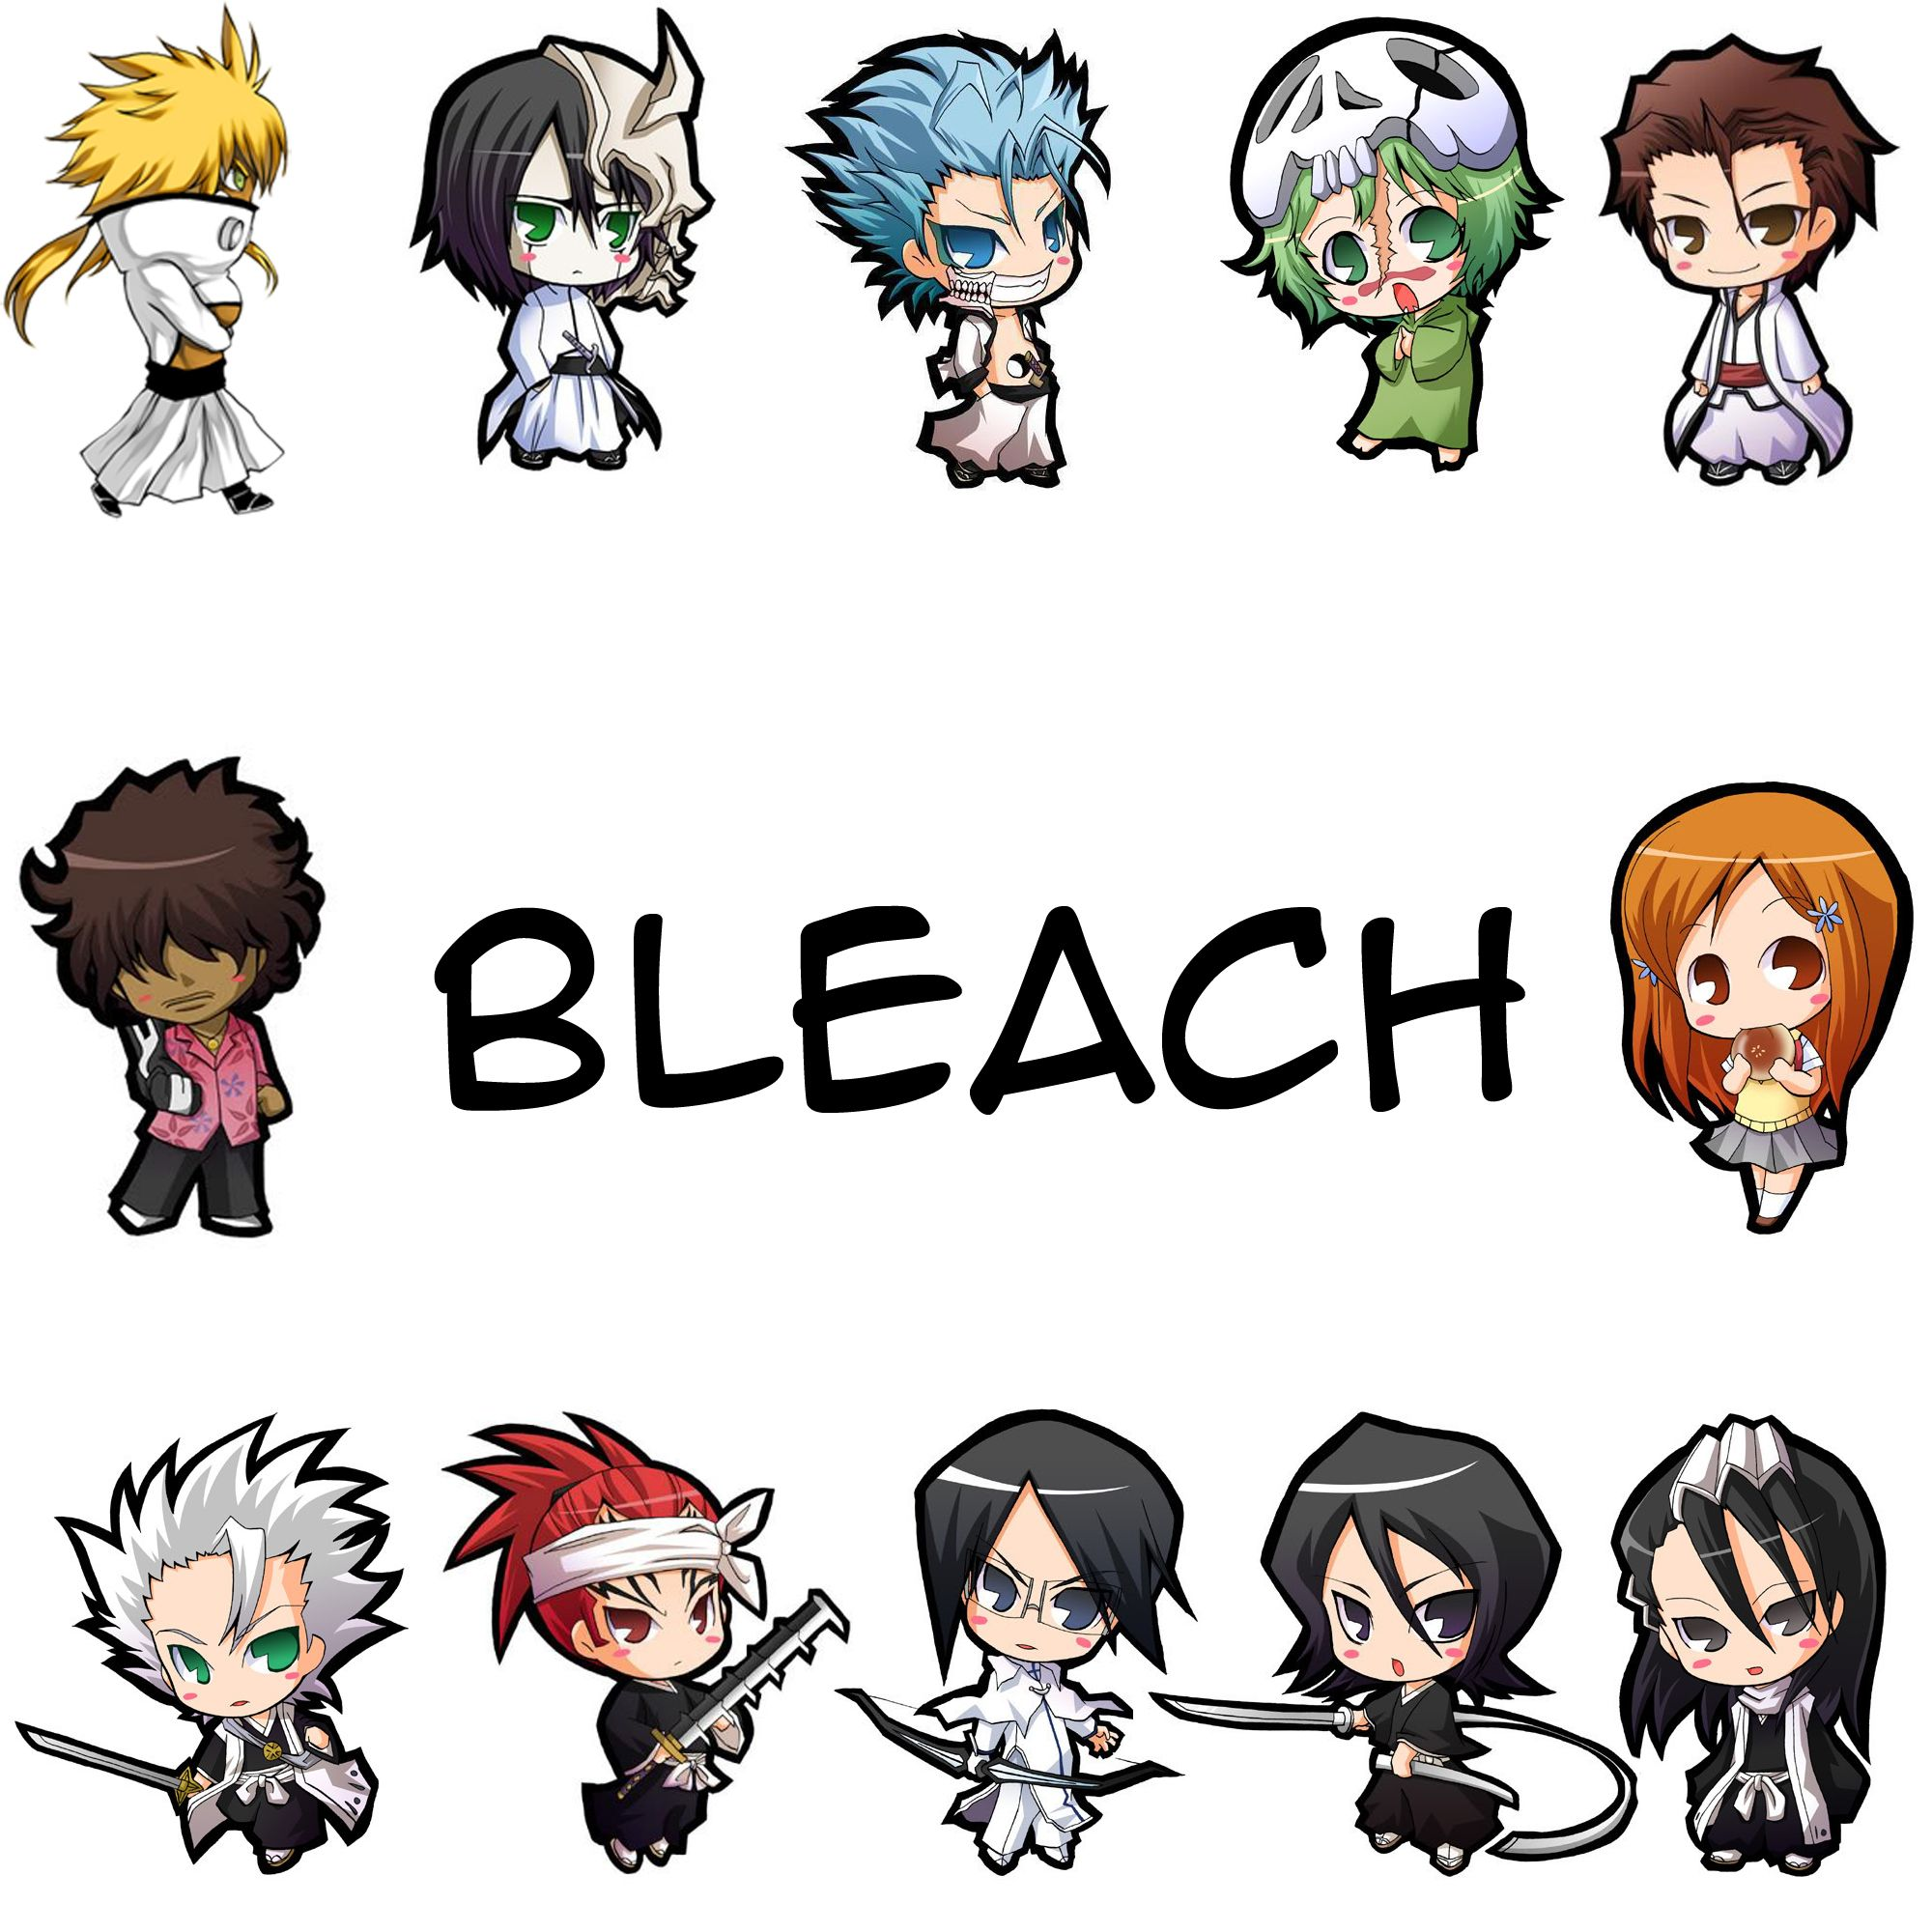 Bleach Anime Characters Chibi Projects Google Search Geek Naruto